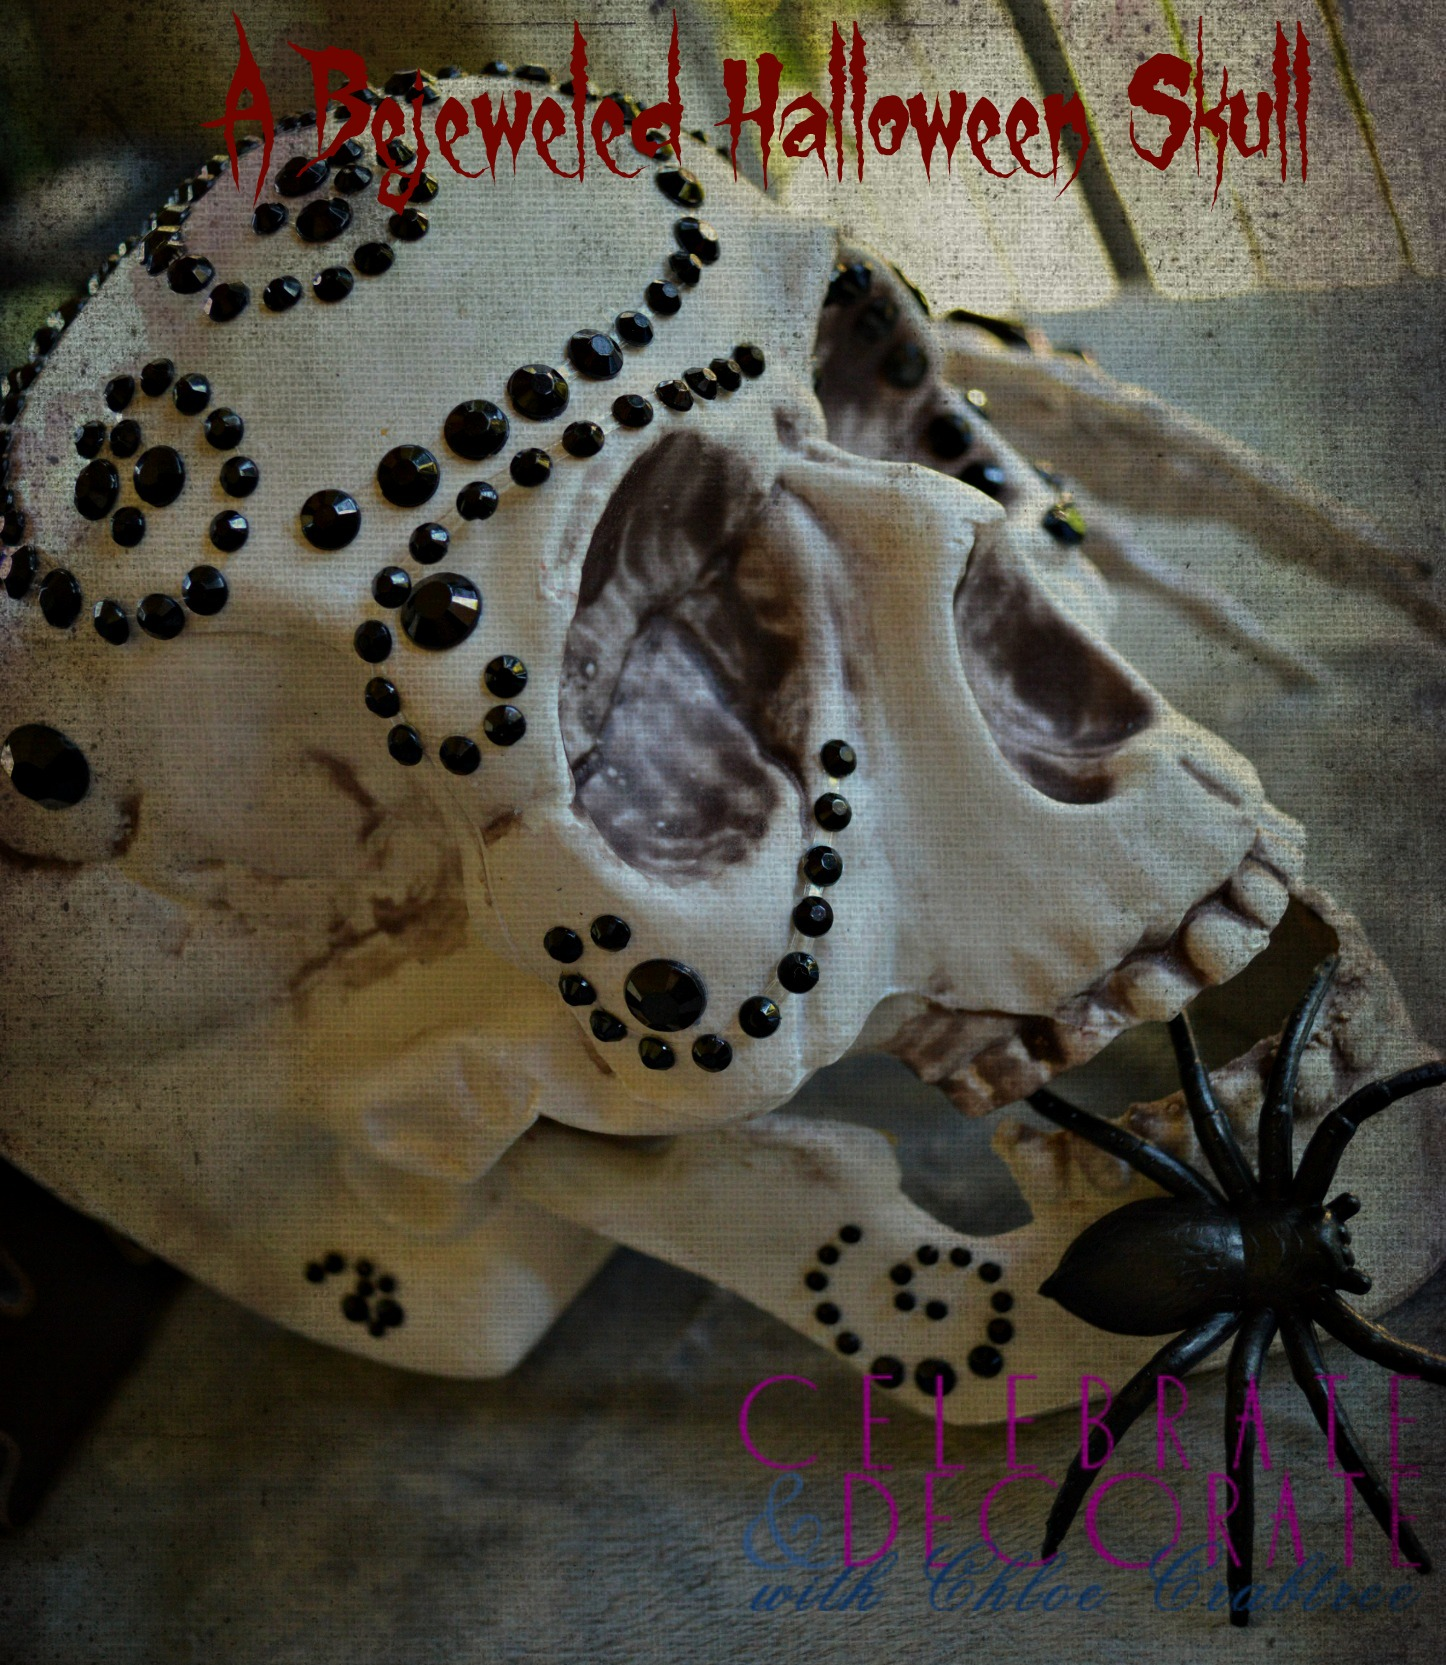 A Bejeweled Halloween Skull